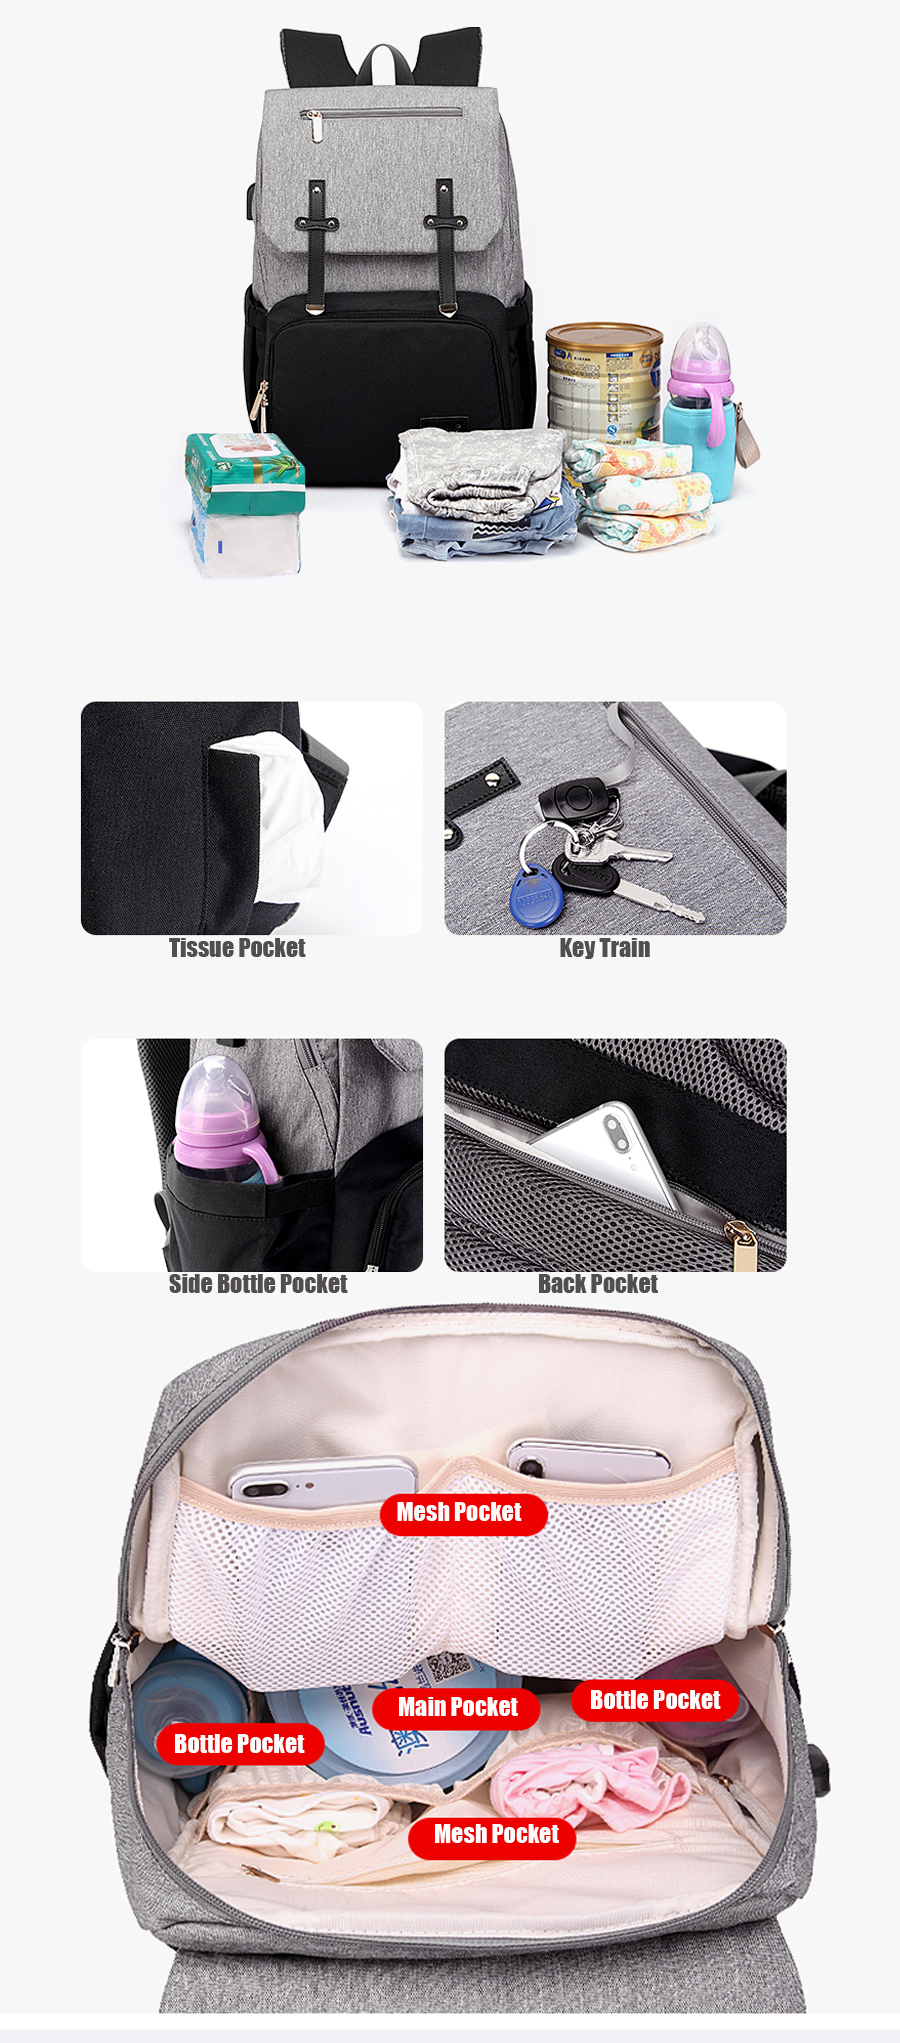 H5773ec07a34b4d2c943c866d7092092aO Baby Diaper Bag with USB Port Waterproof Nappy Bag Mommy Backpack Laptop Bag Maternity Bags With Rechargeable Bottle Holder